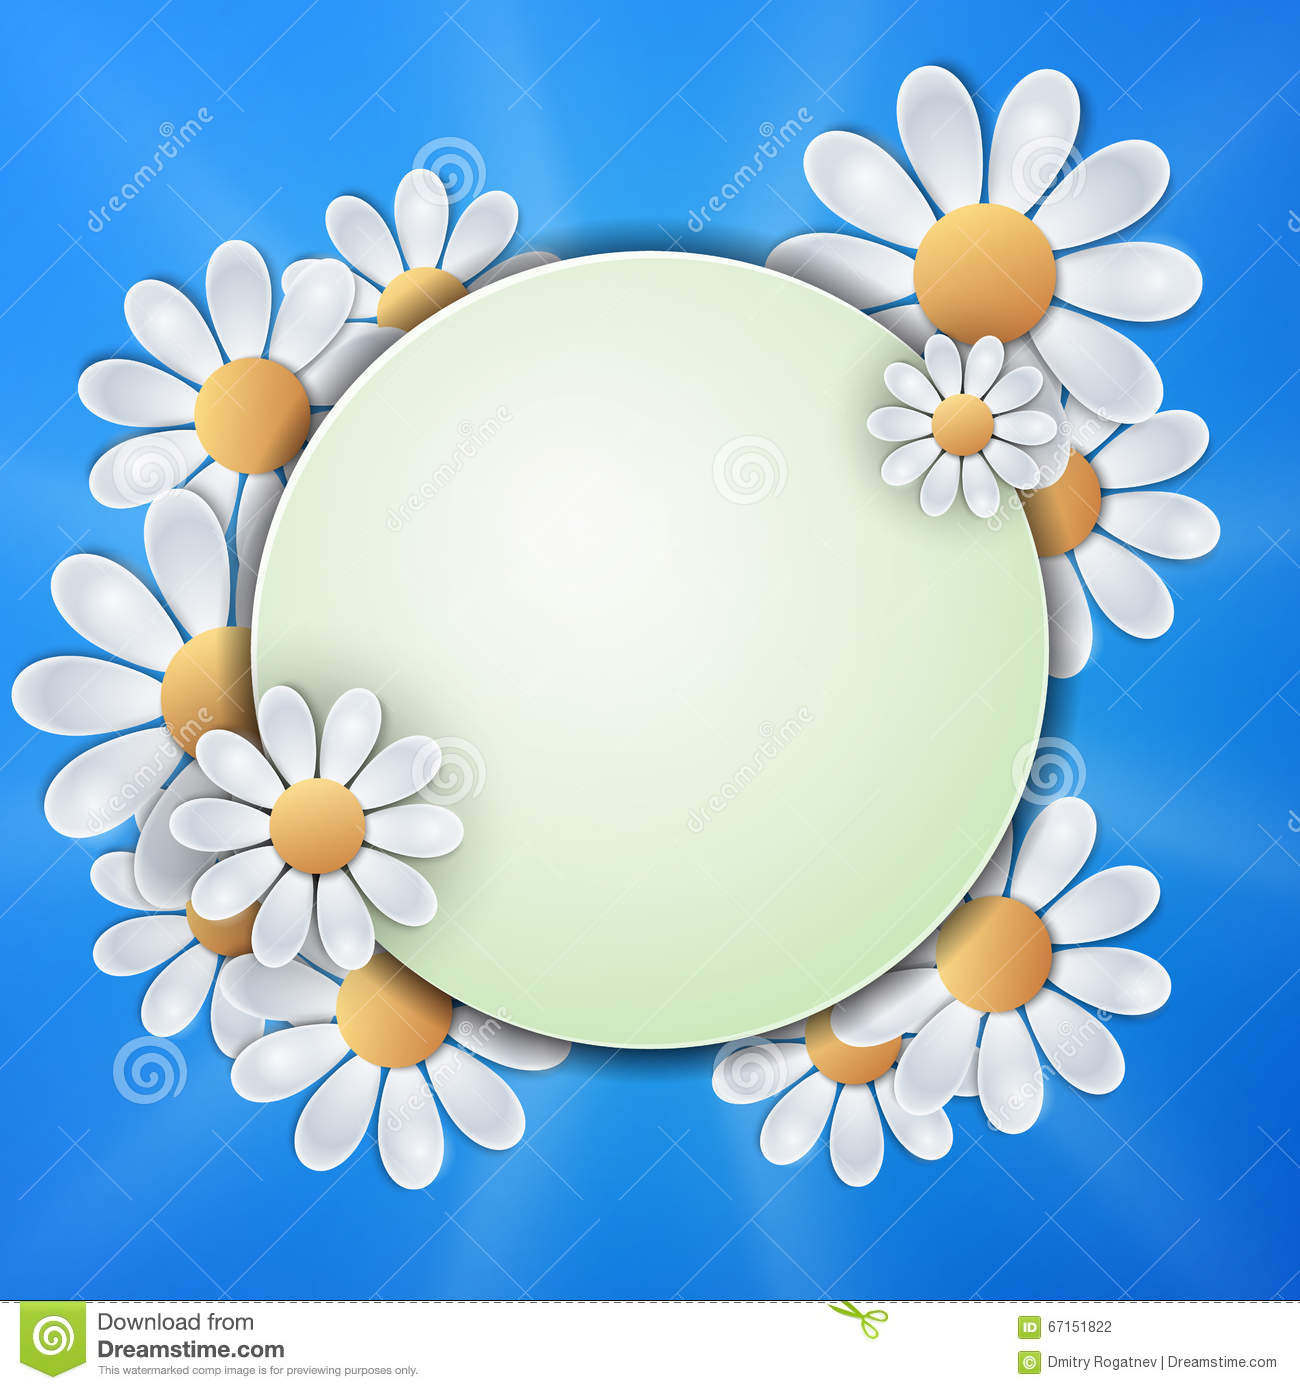 Floral Invitation Design With Paper Daisy Flowers. Stock Vector.